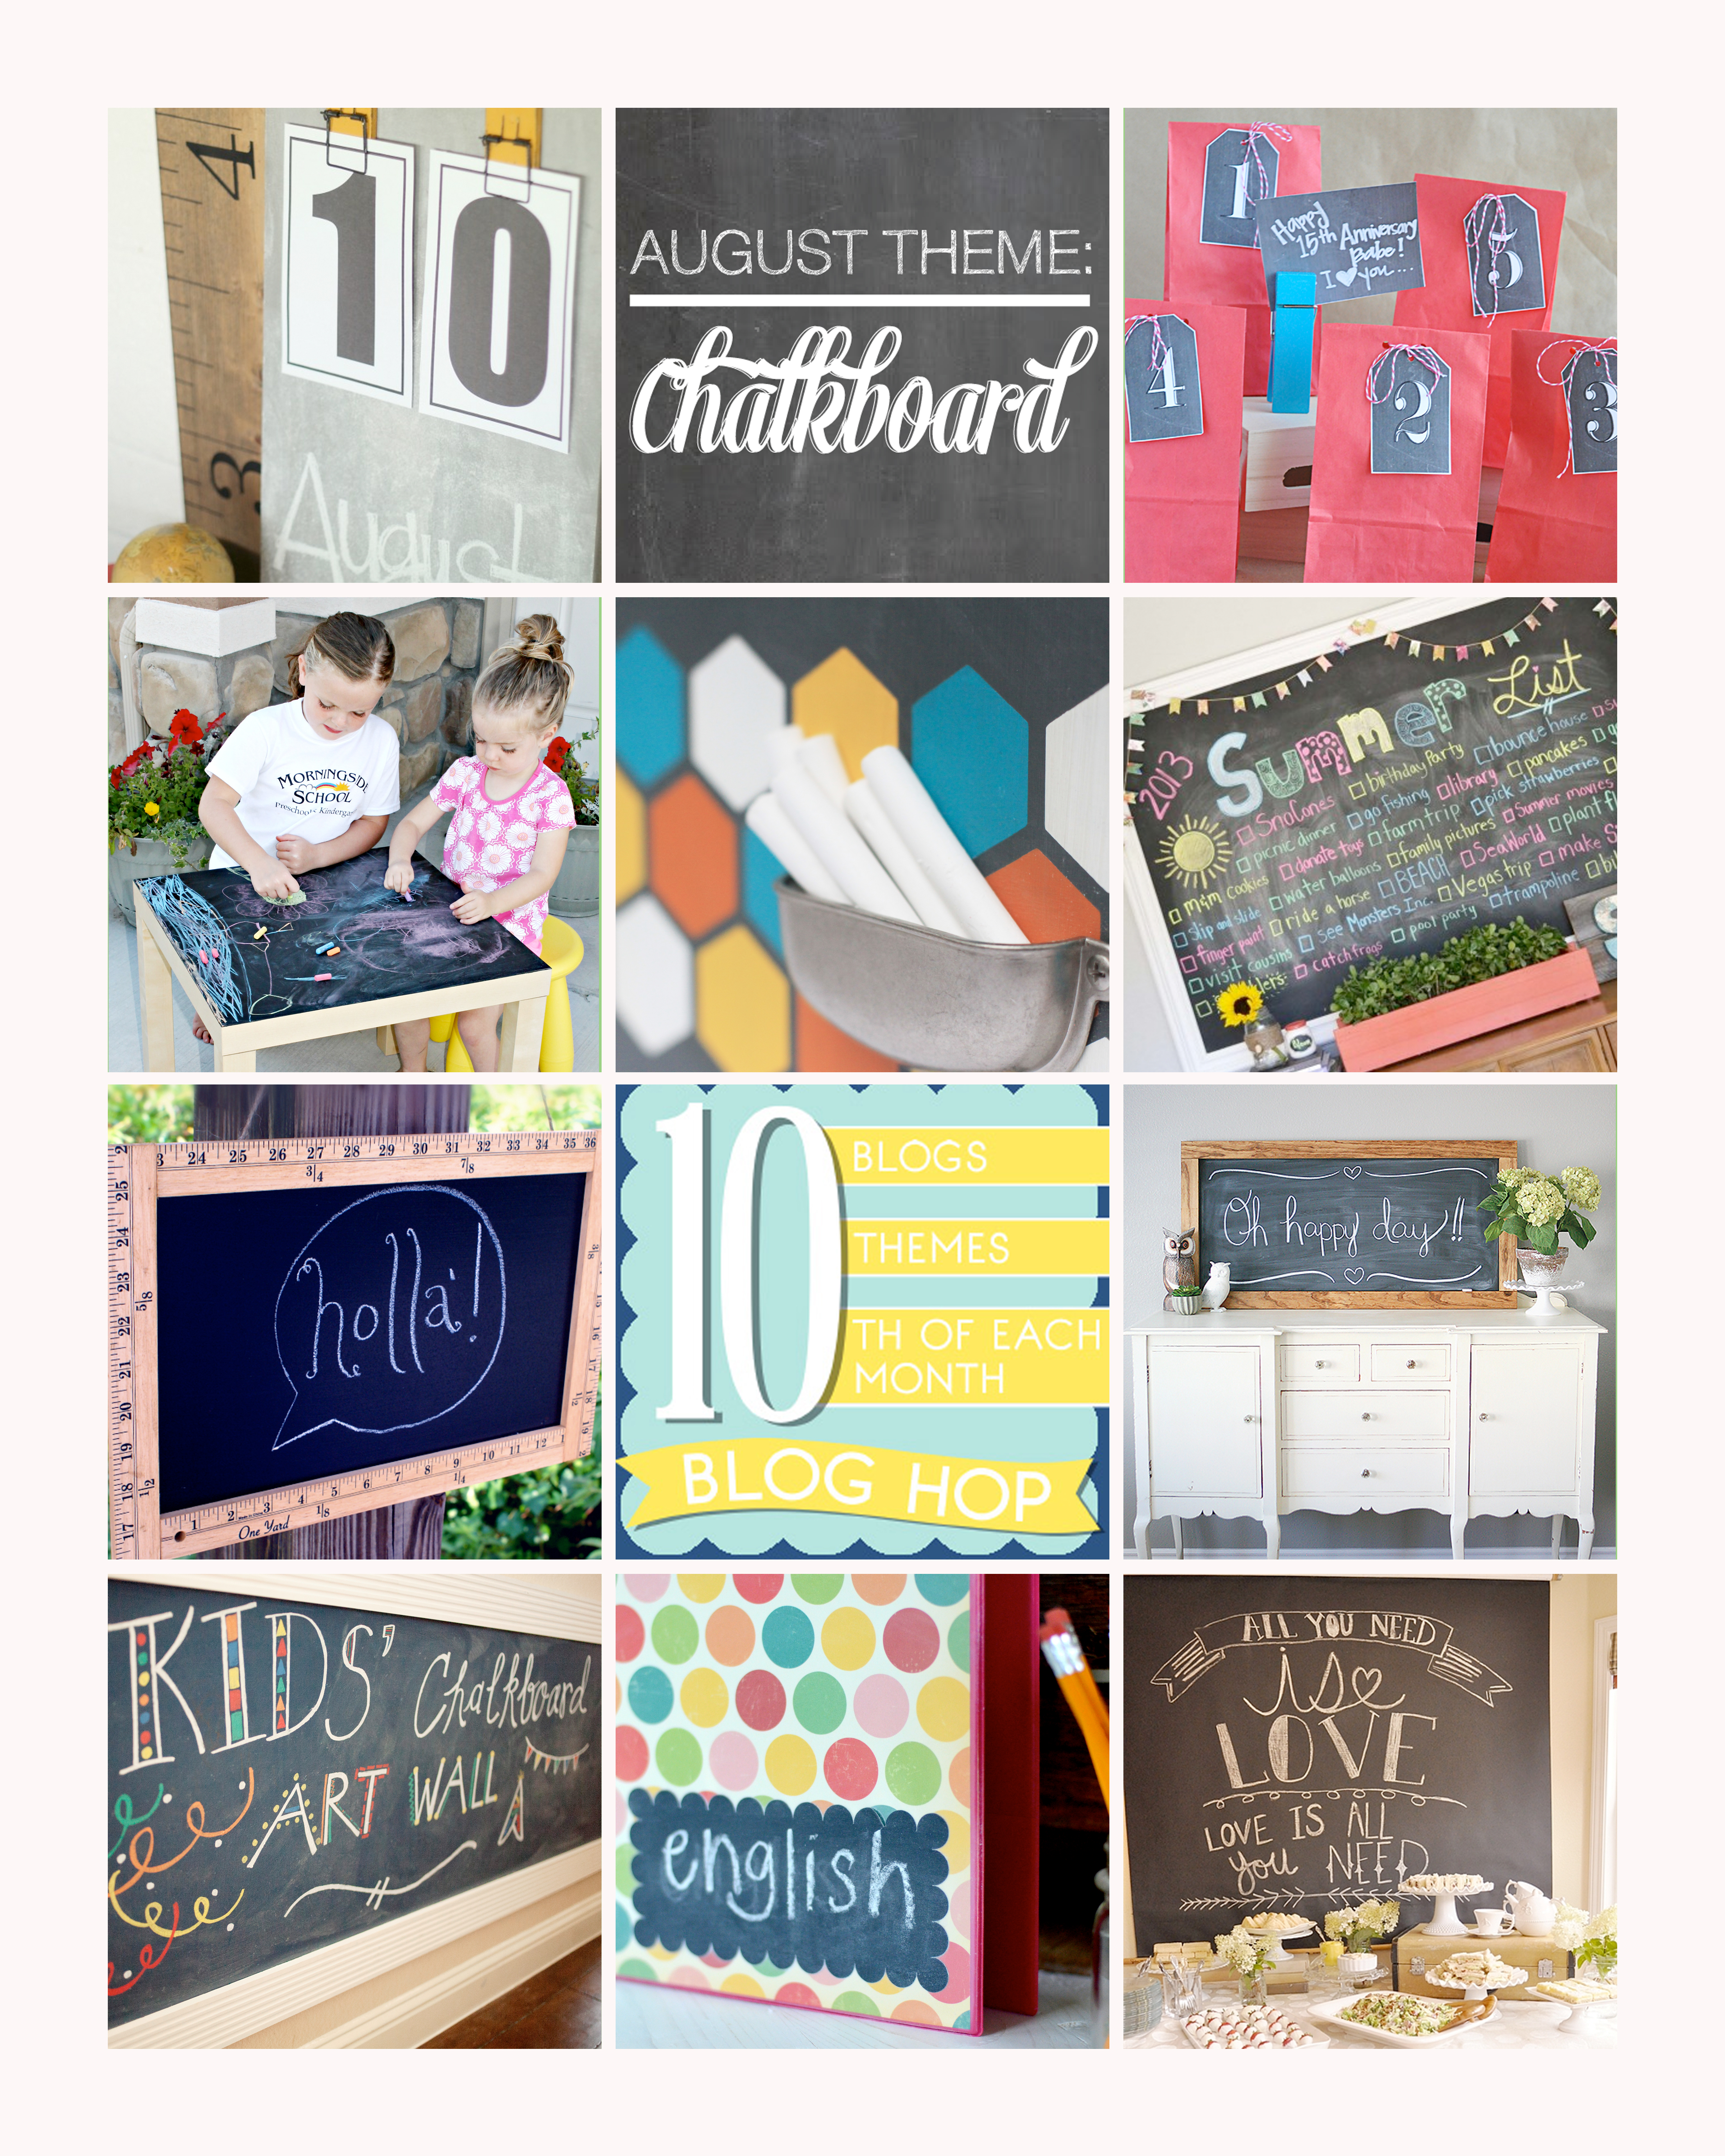 10 fabulous chalkboard projects from 10 creative bloggers www.thirtyhandmadedays.com